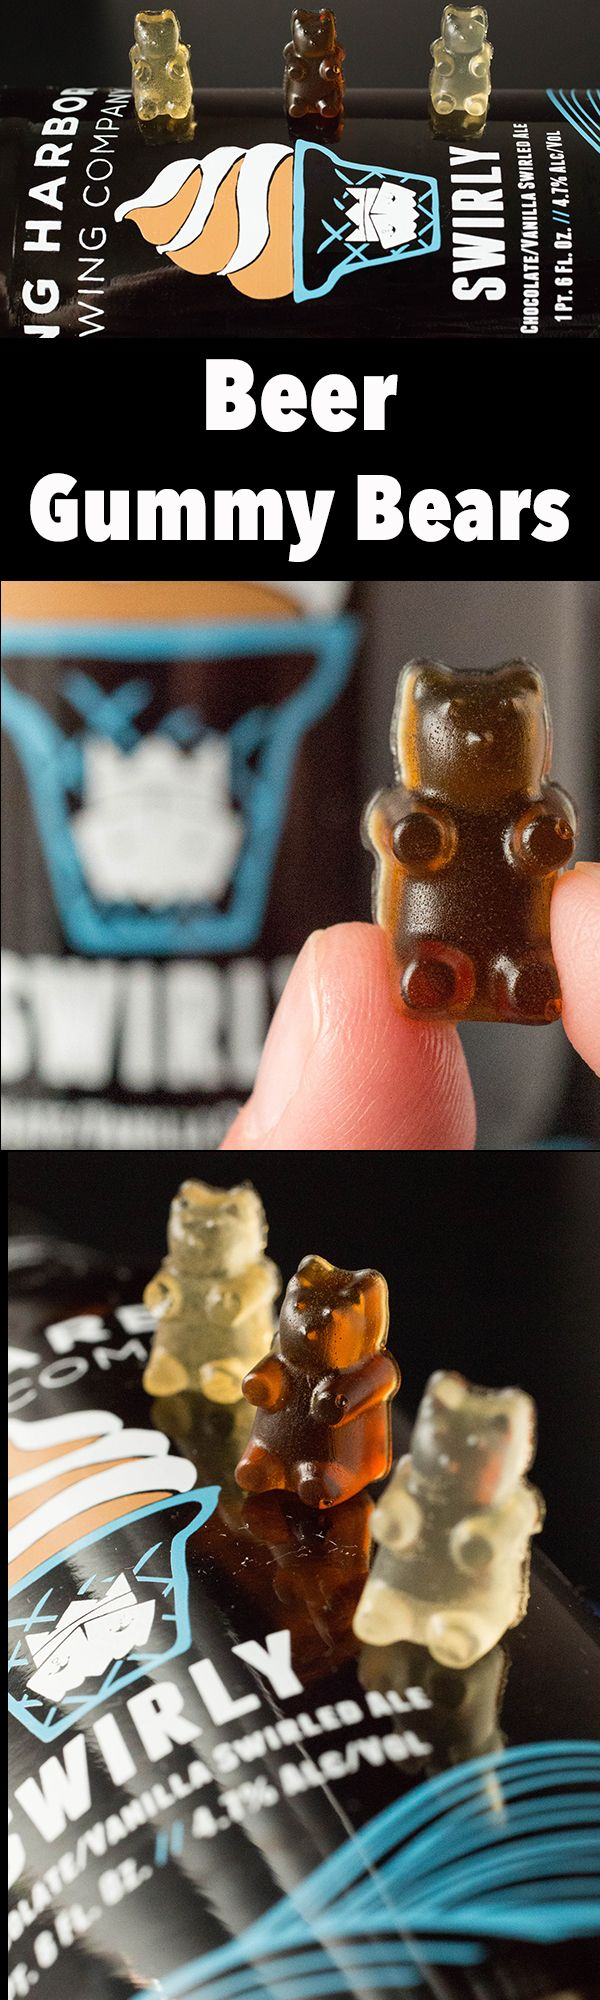 Haribo gummy bears are just one of many products that thomas - Beer Gummy Bears